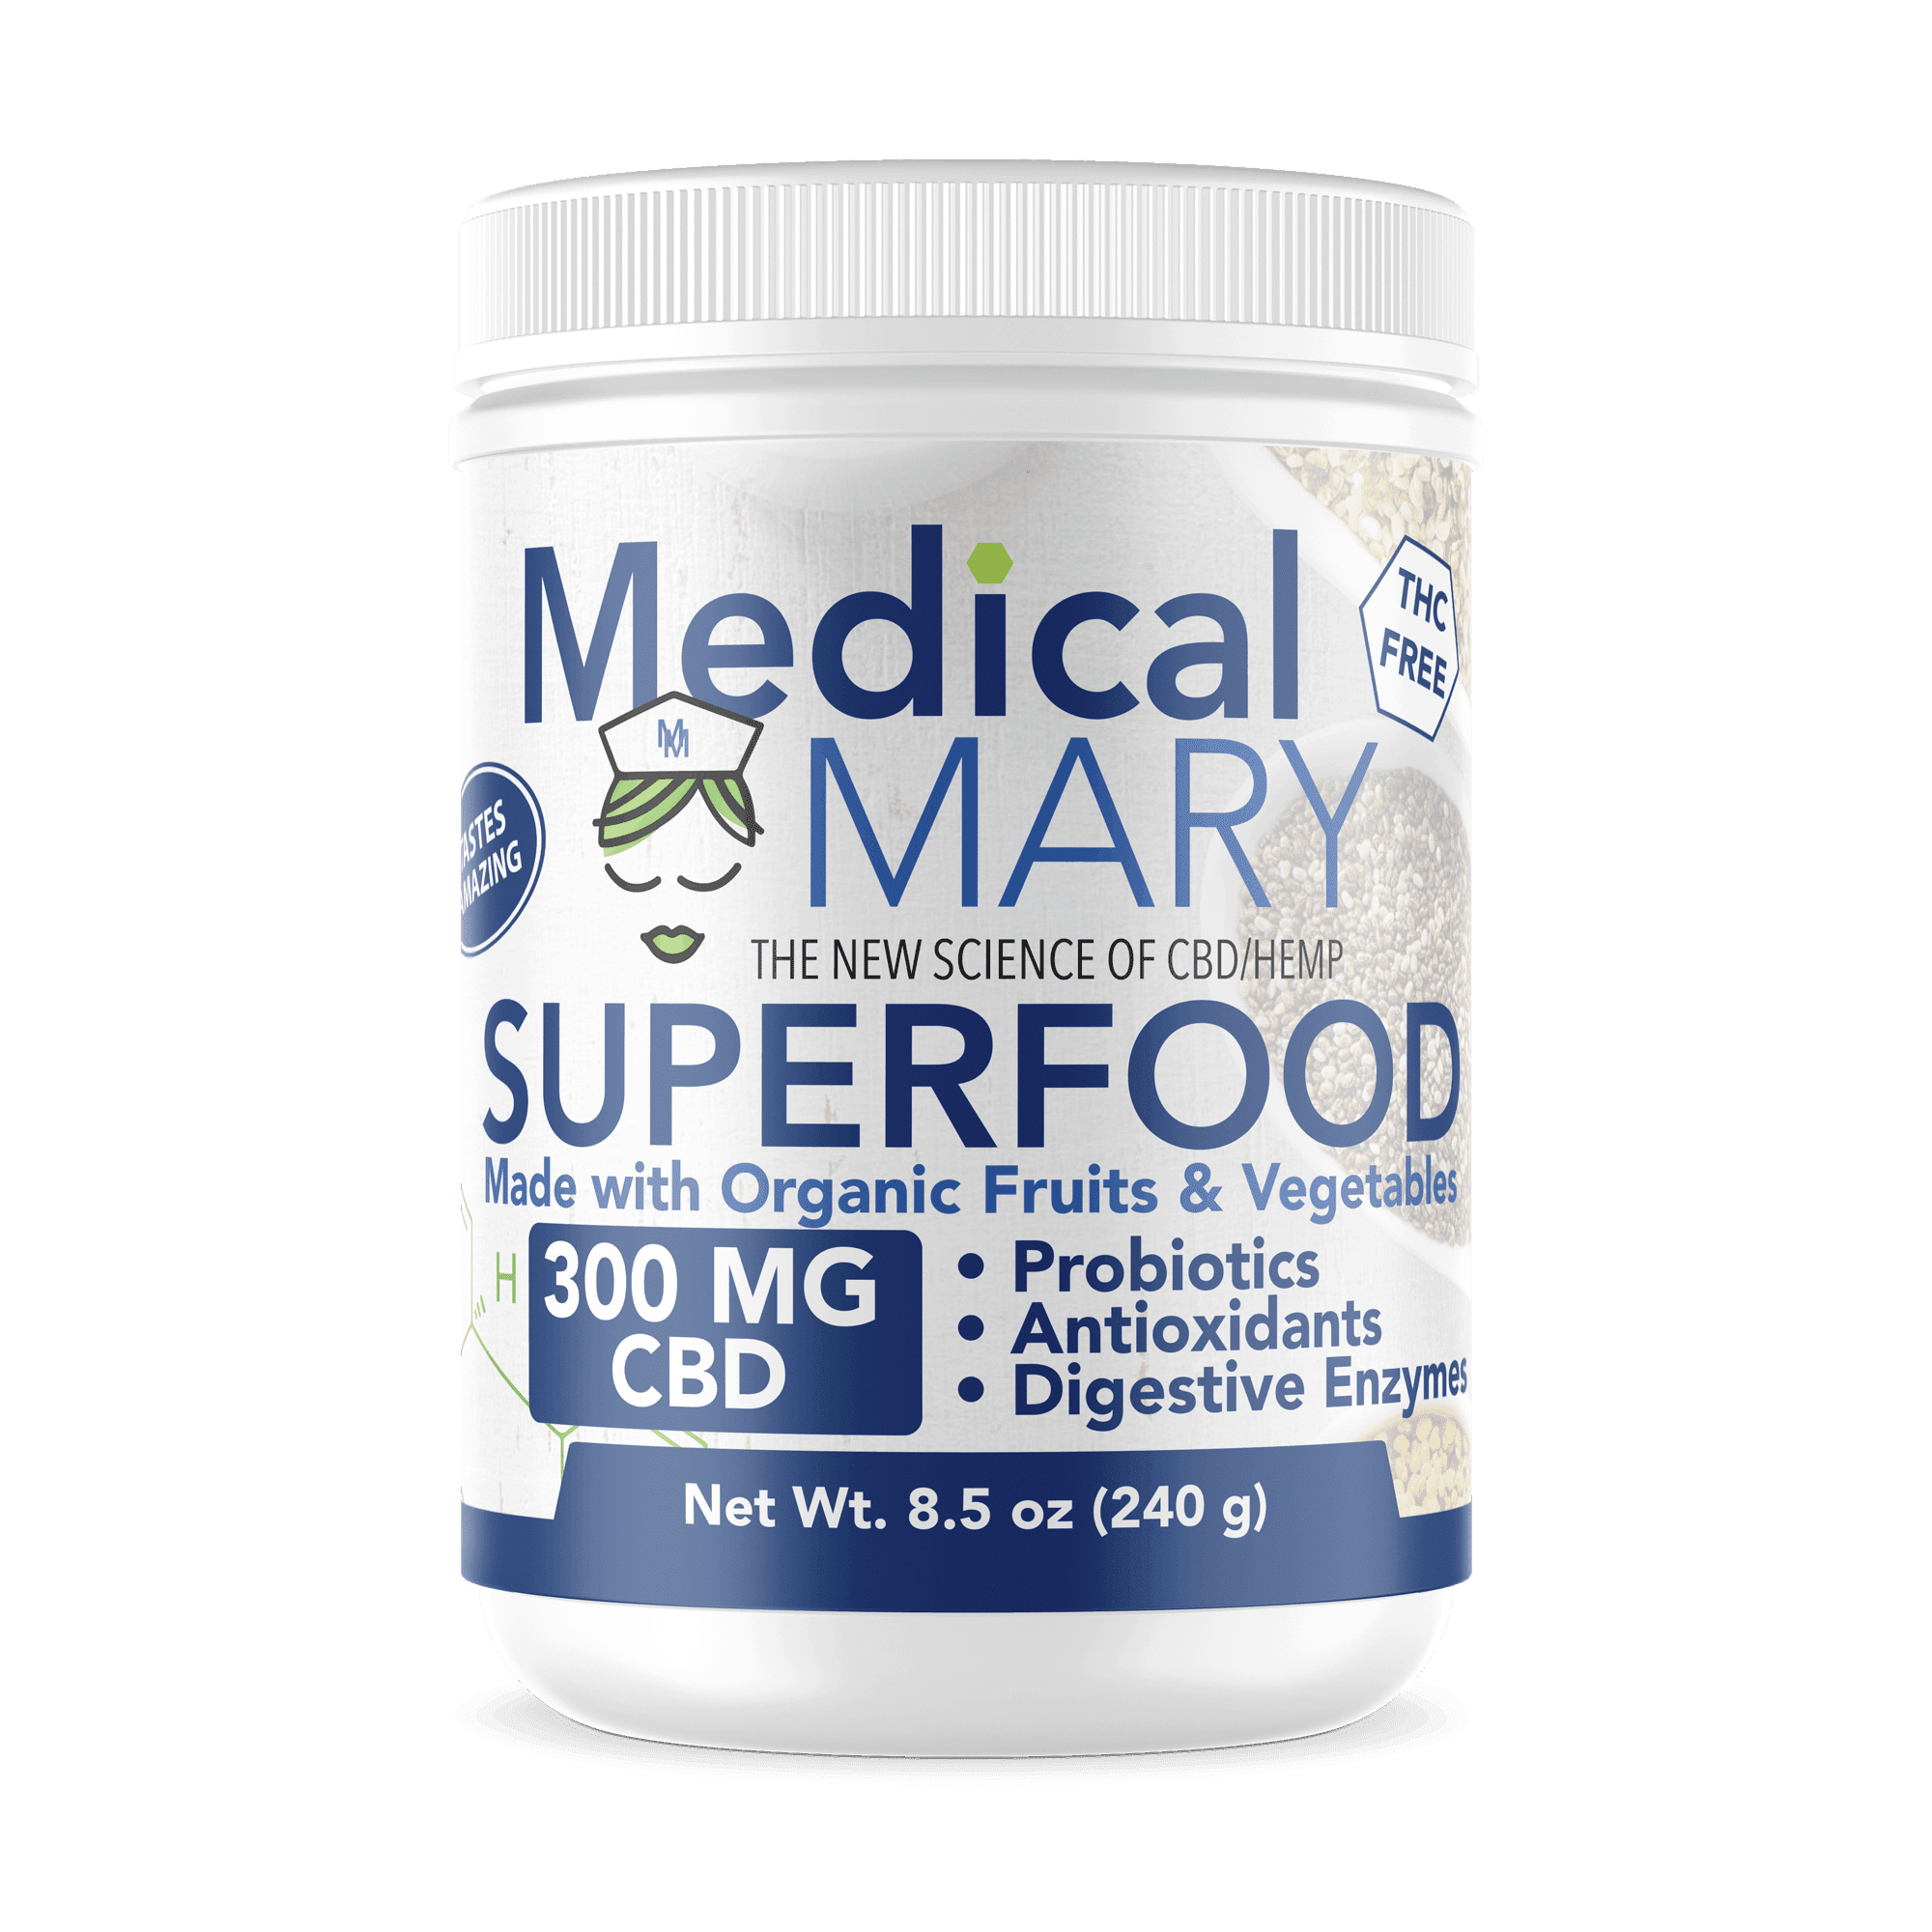 Cbd Superfood Powder, CBD Superfood Powder, Cbd Superfood Powder, Organic Green Drinks, Super Food Green, Super Food Fruit